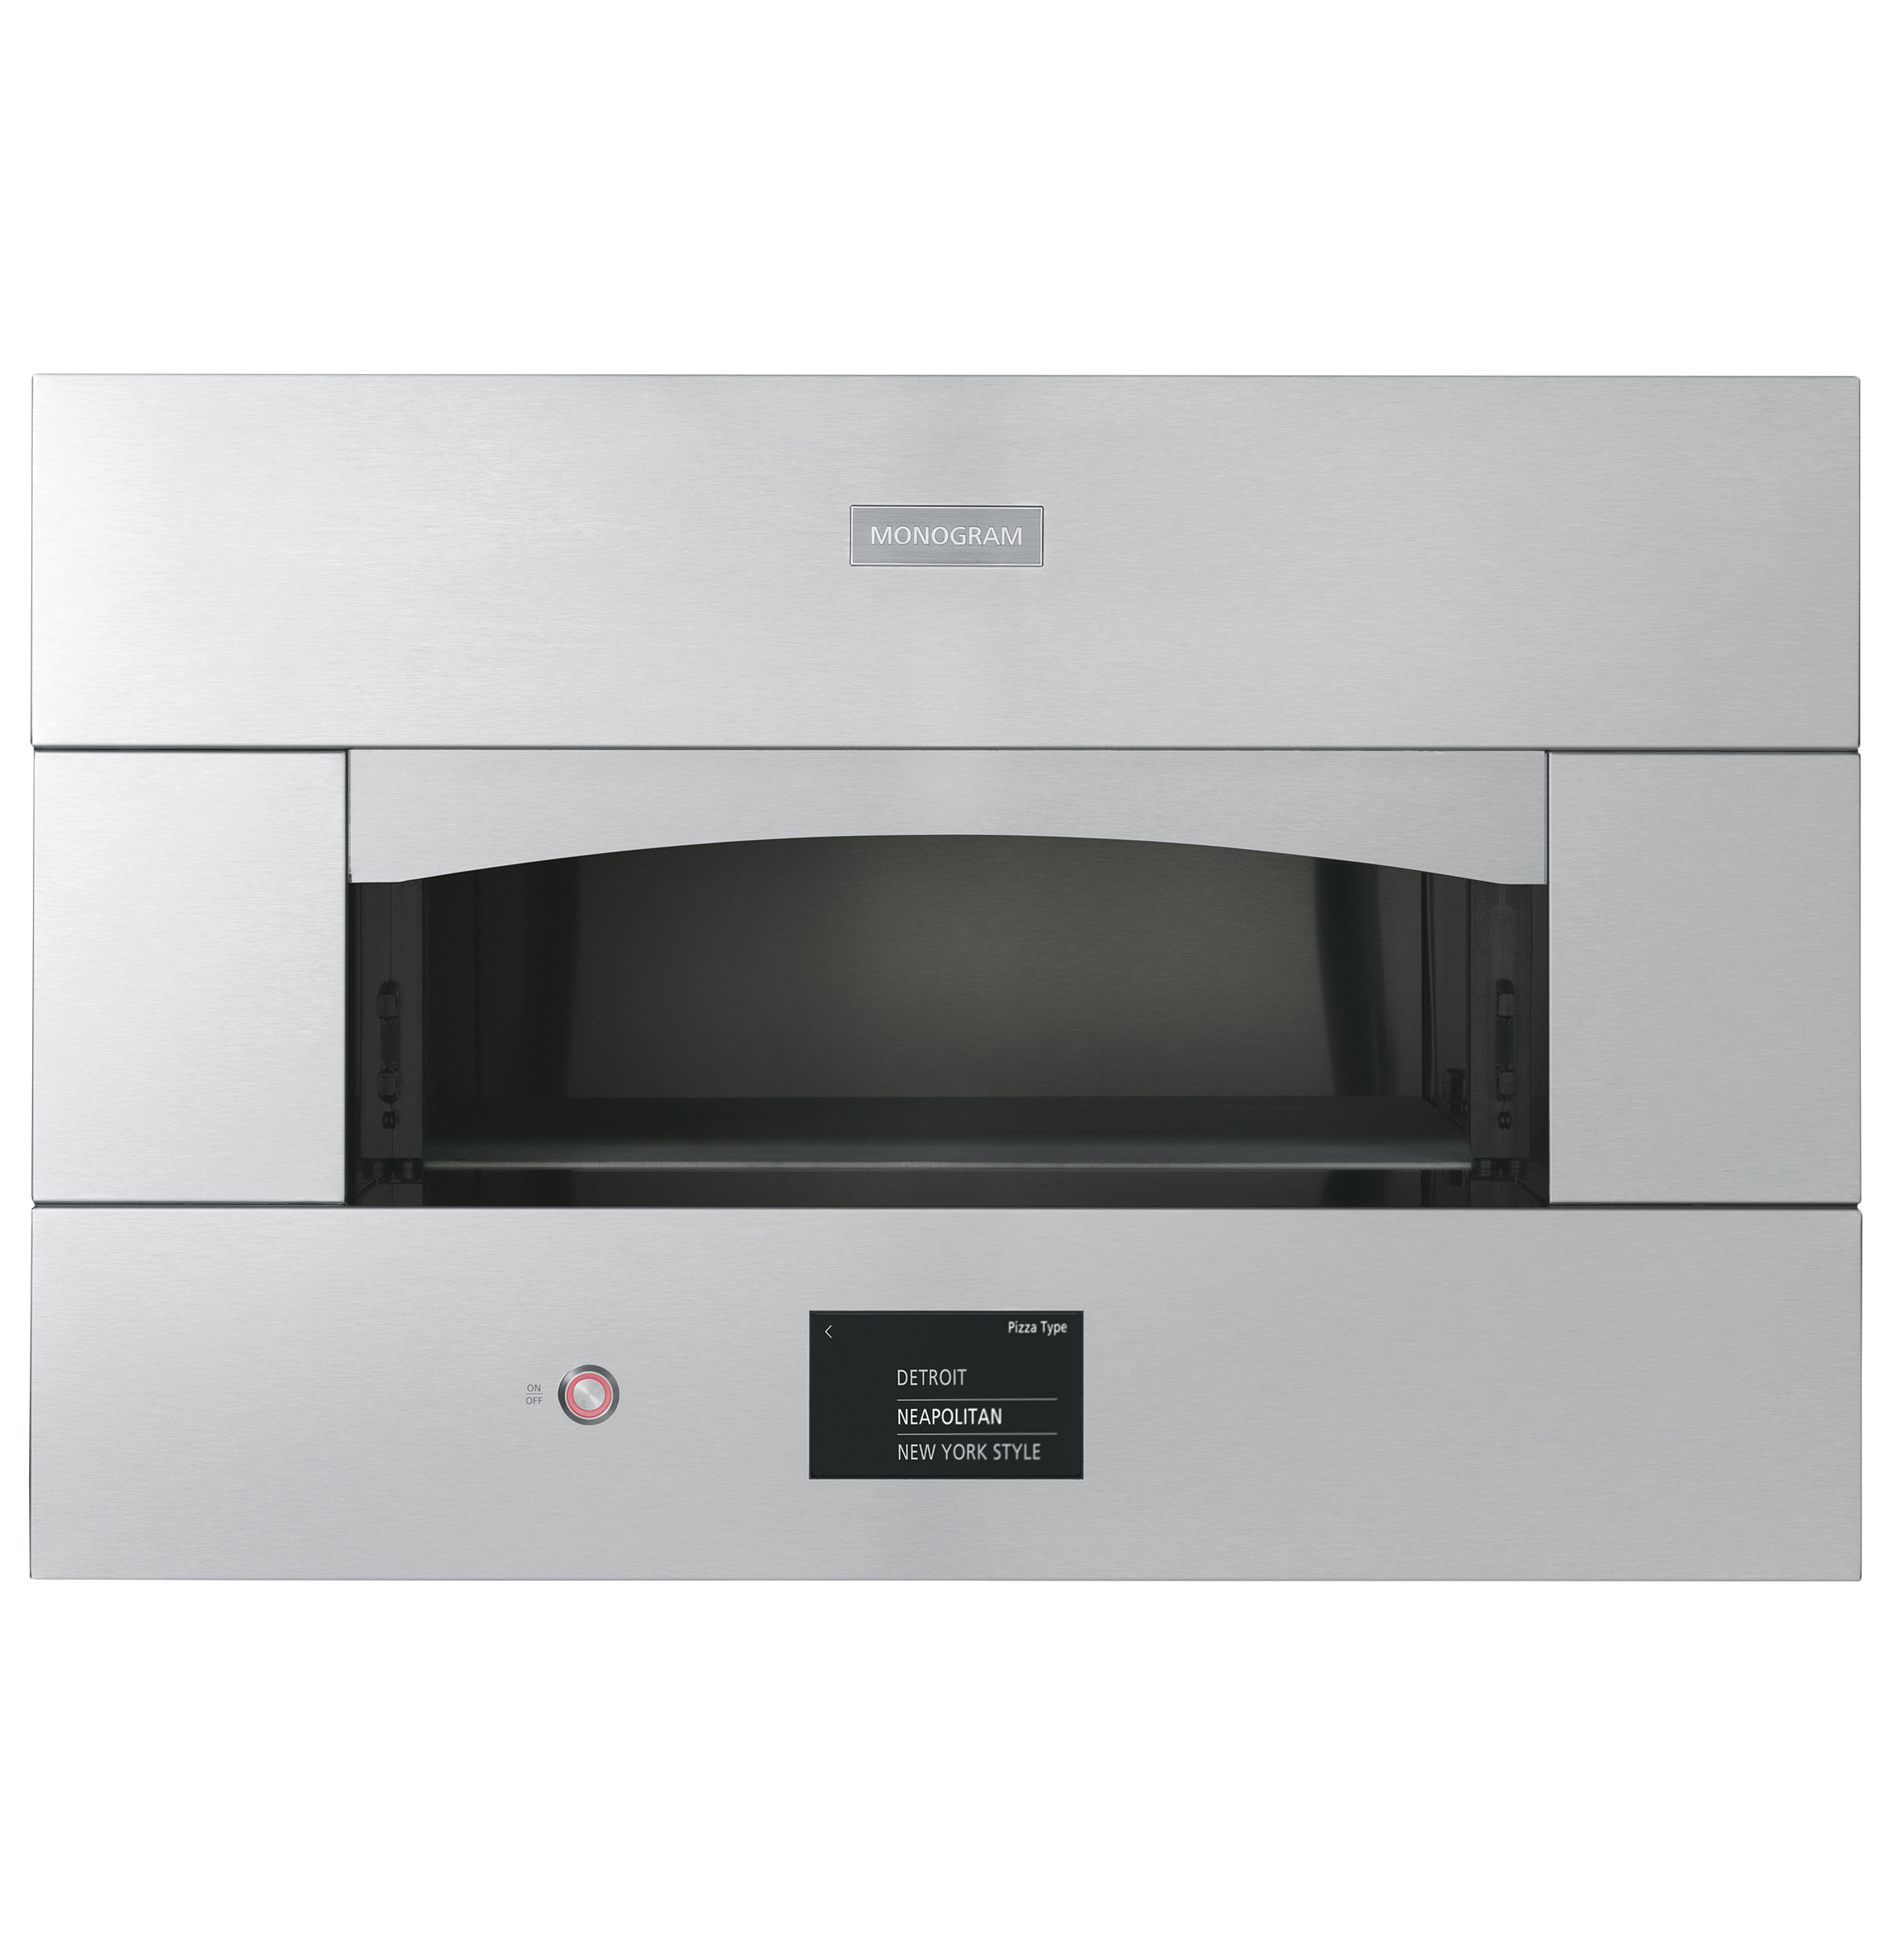 "Monogram Monogram 30"" Smart Hearth Oven"